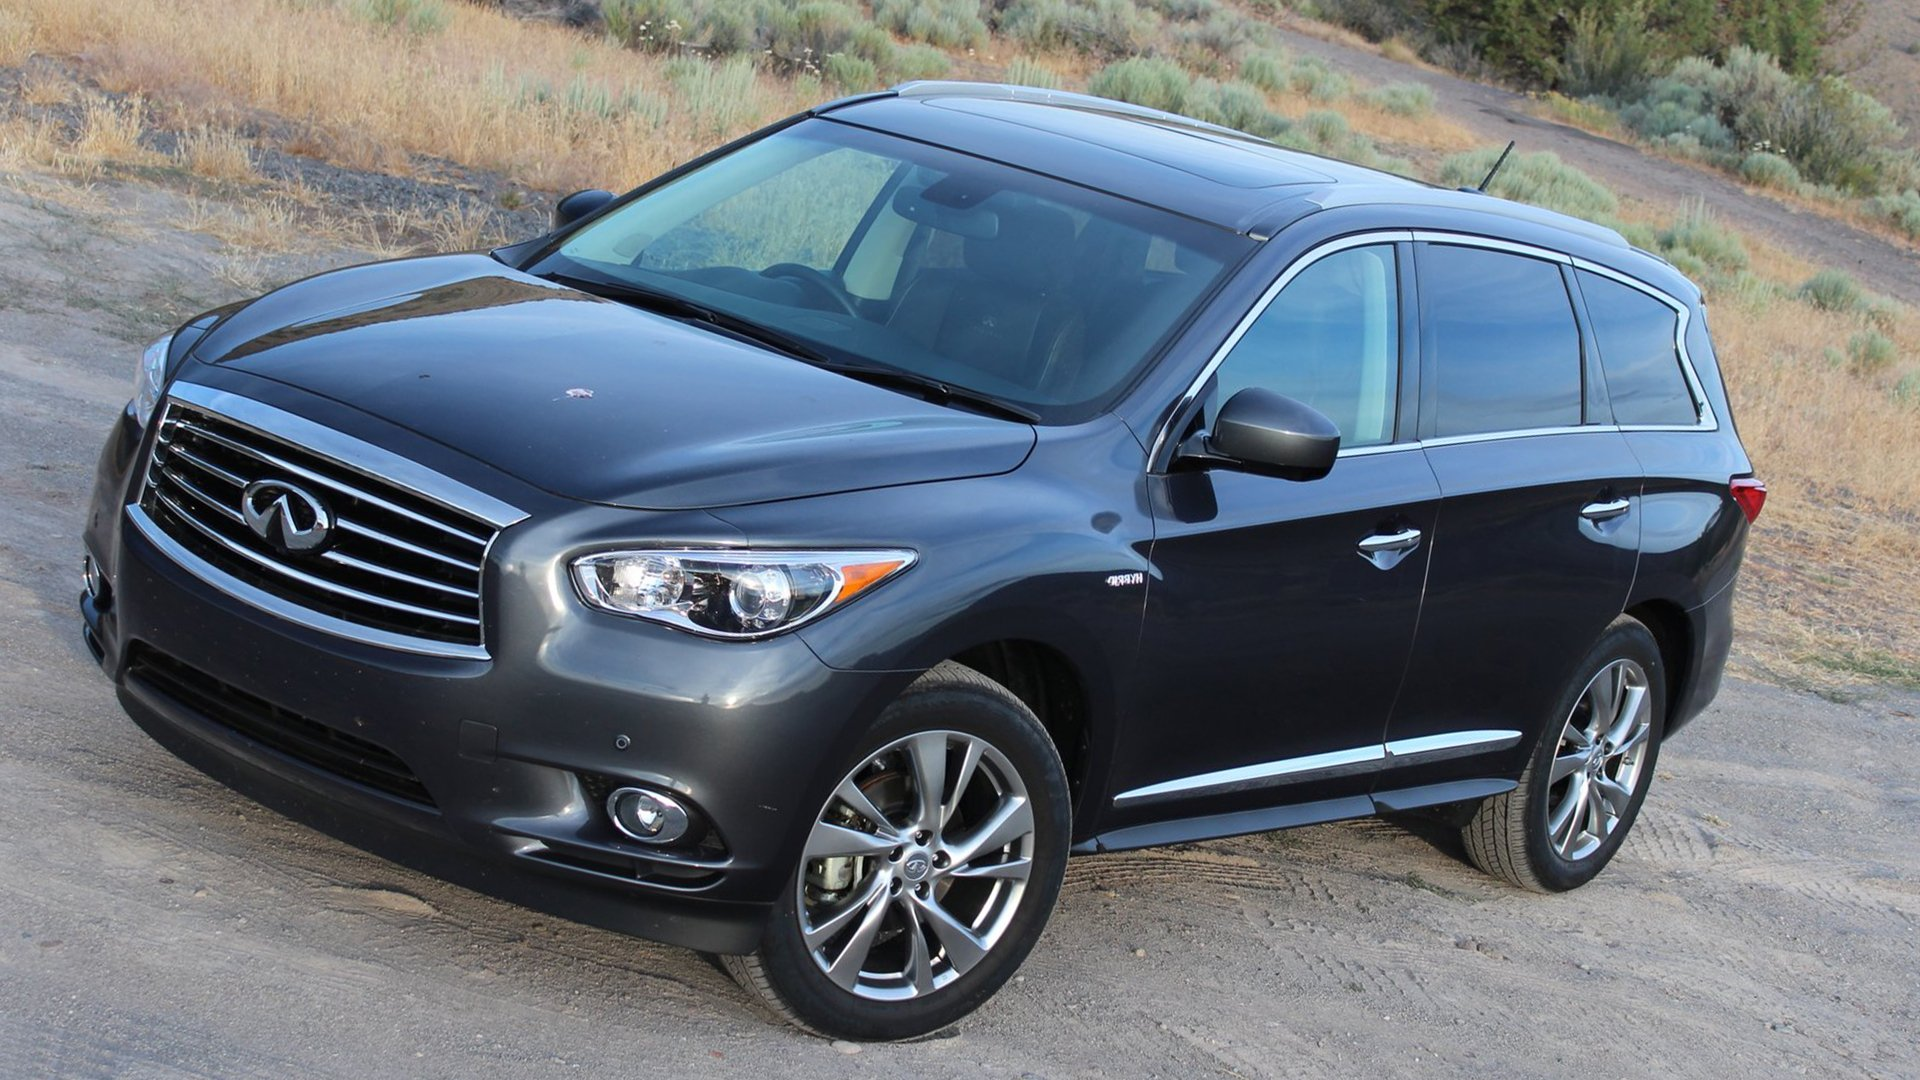 New 2019 Infiniti QX60 Specs Features